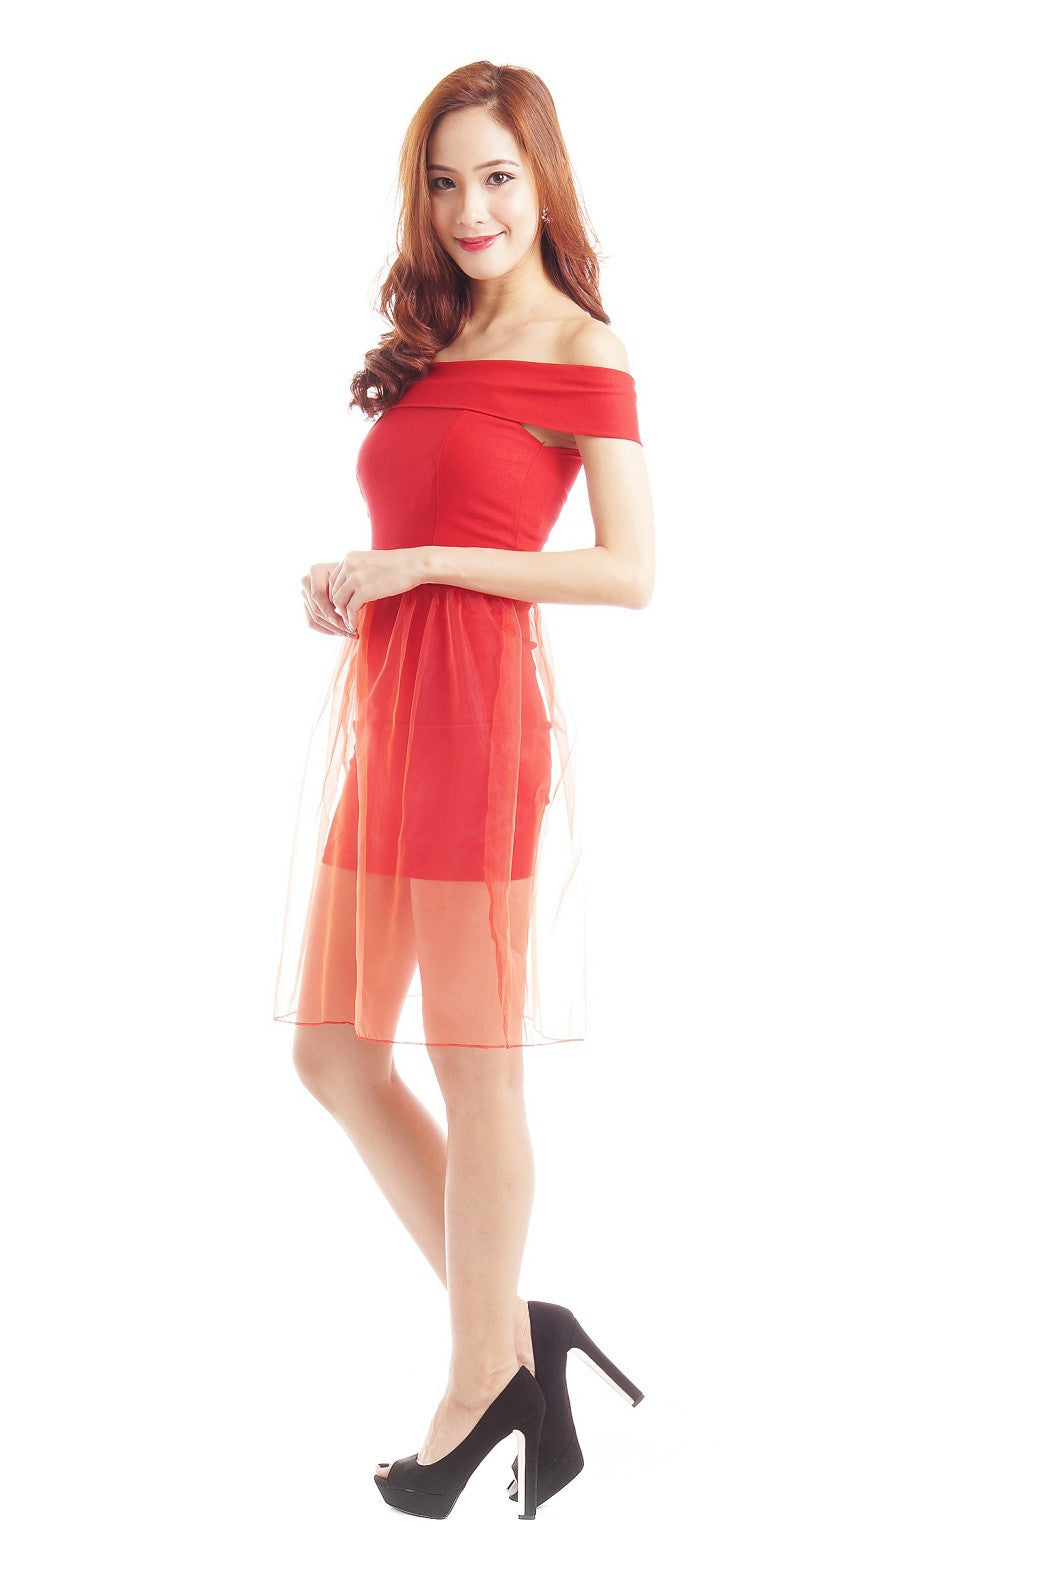 XENA ORGANZA OVERLAY DRESS IN RED